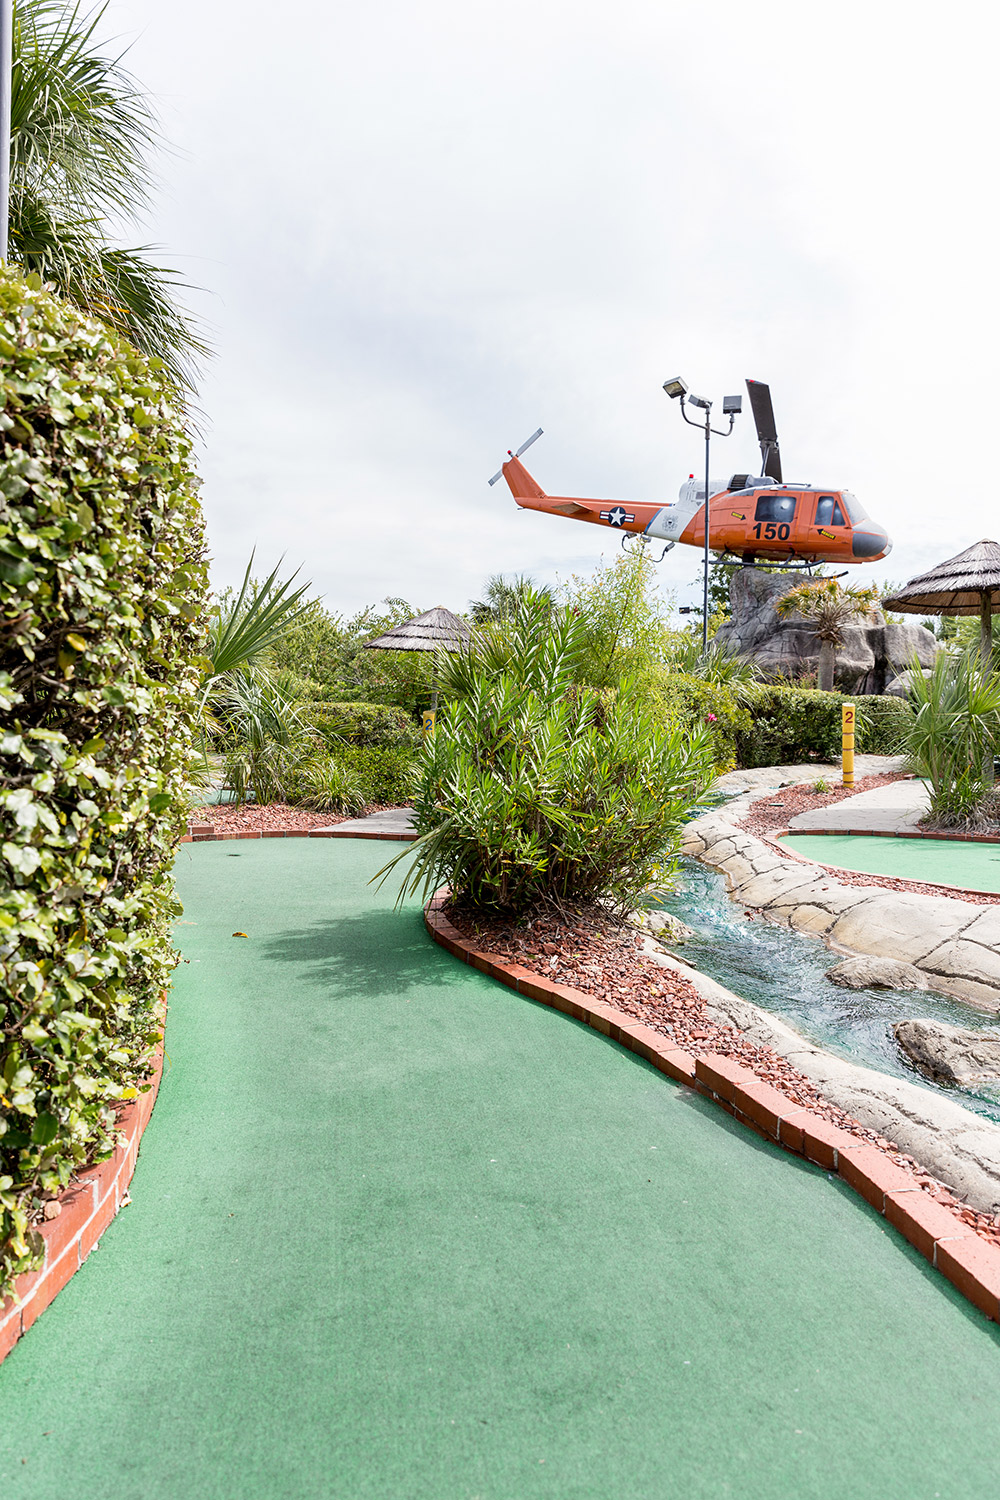 myrtle beach mini golf course in sc